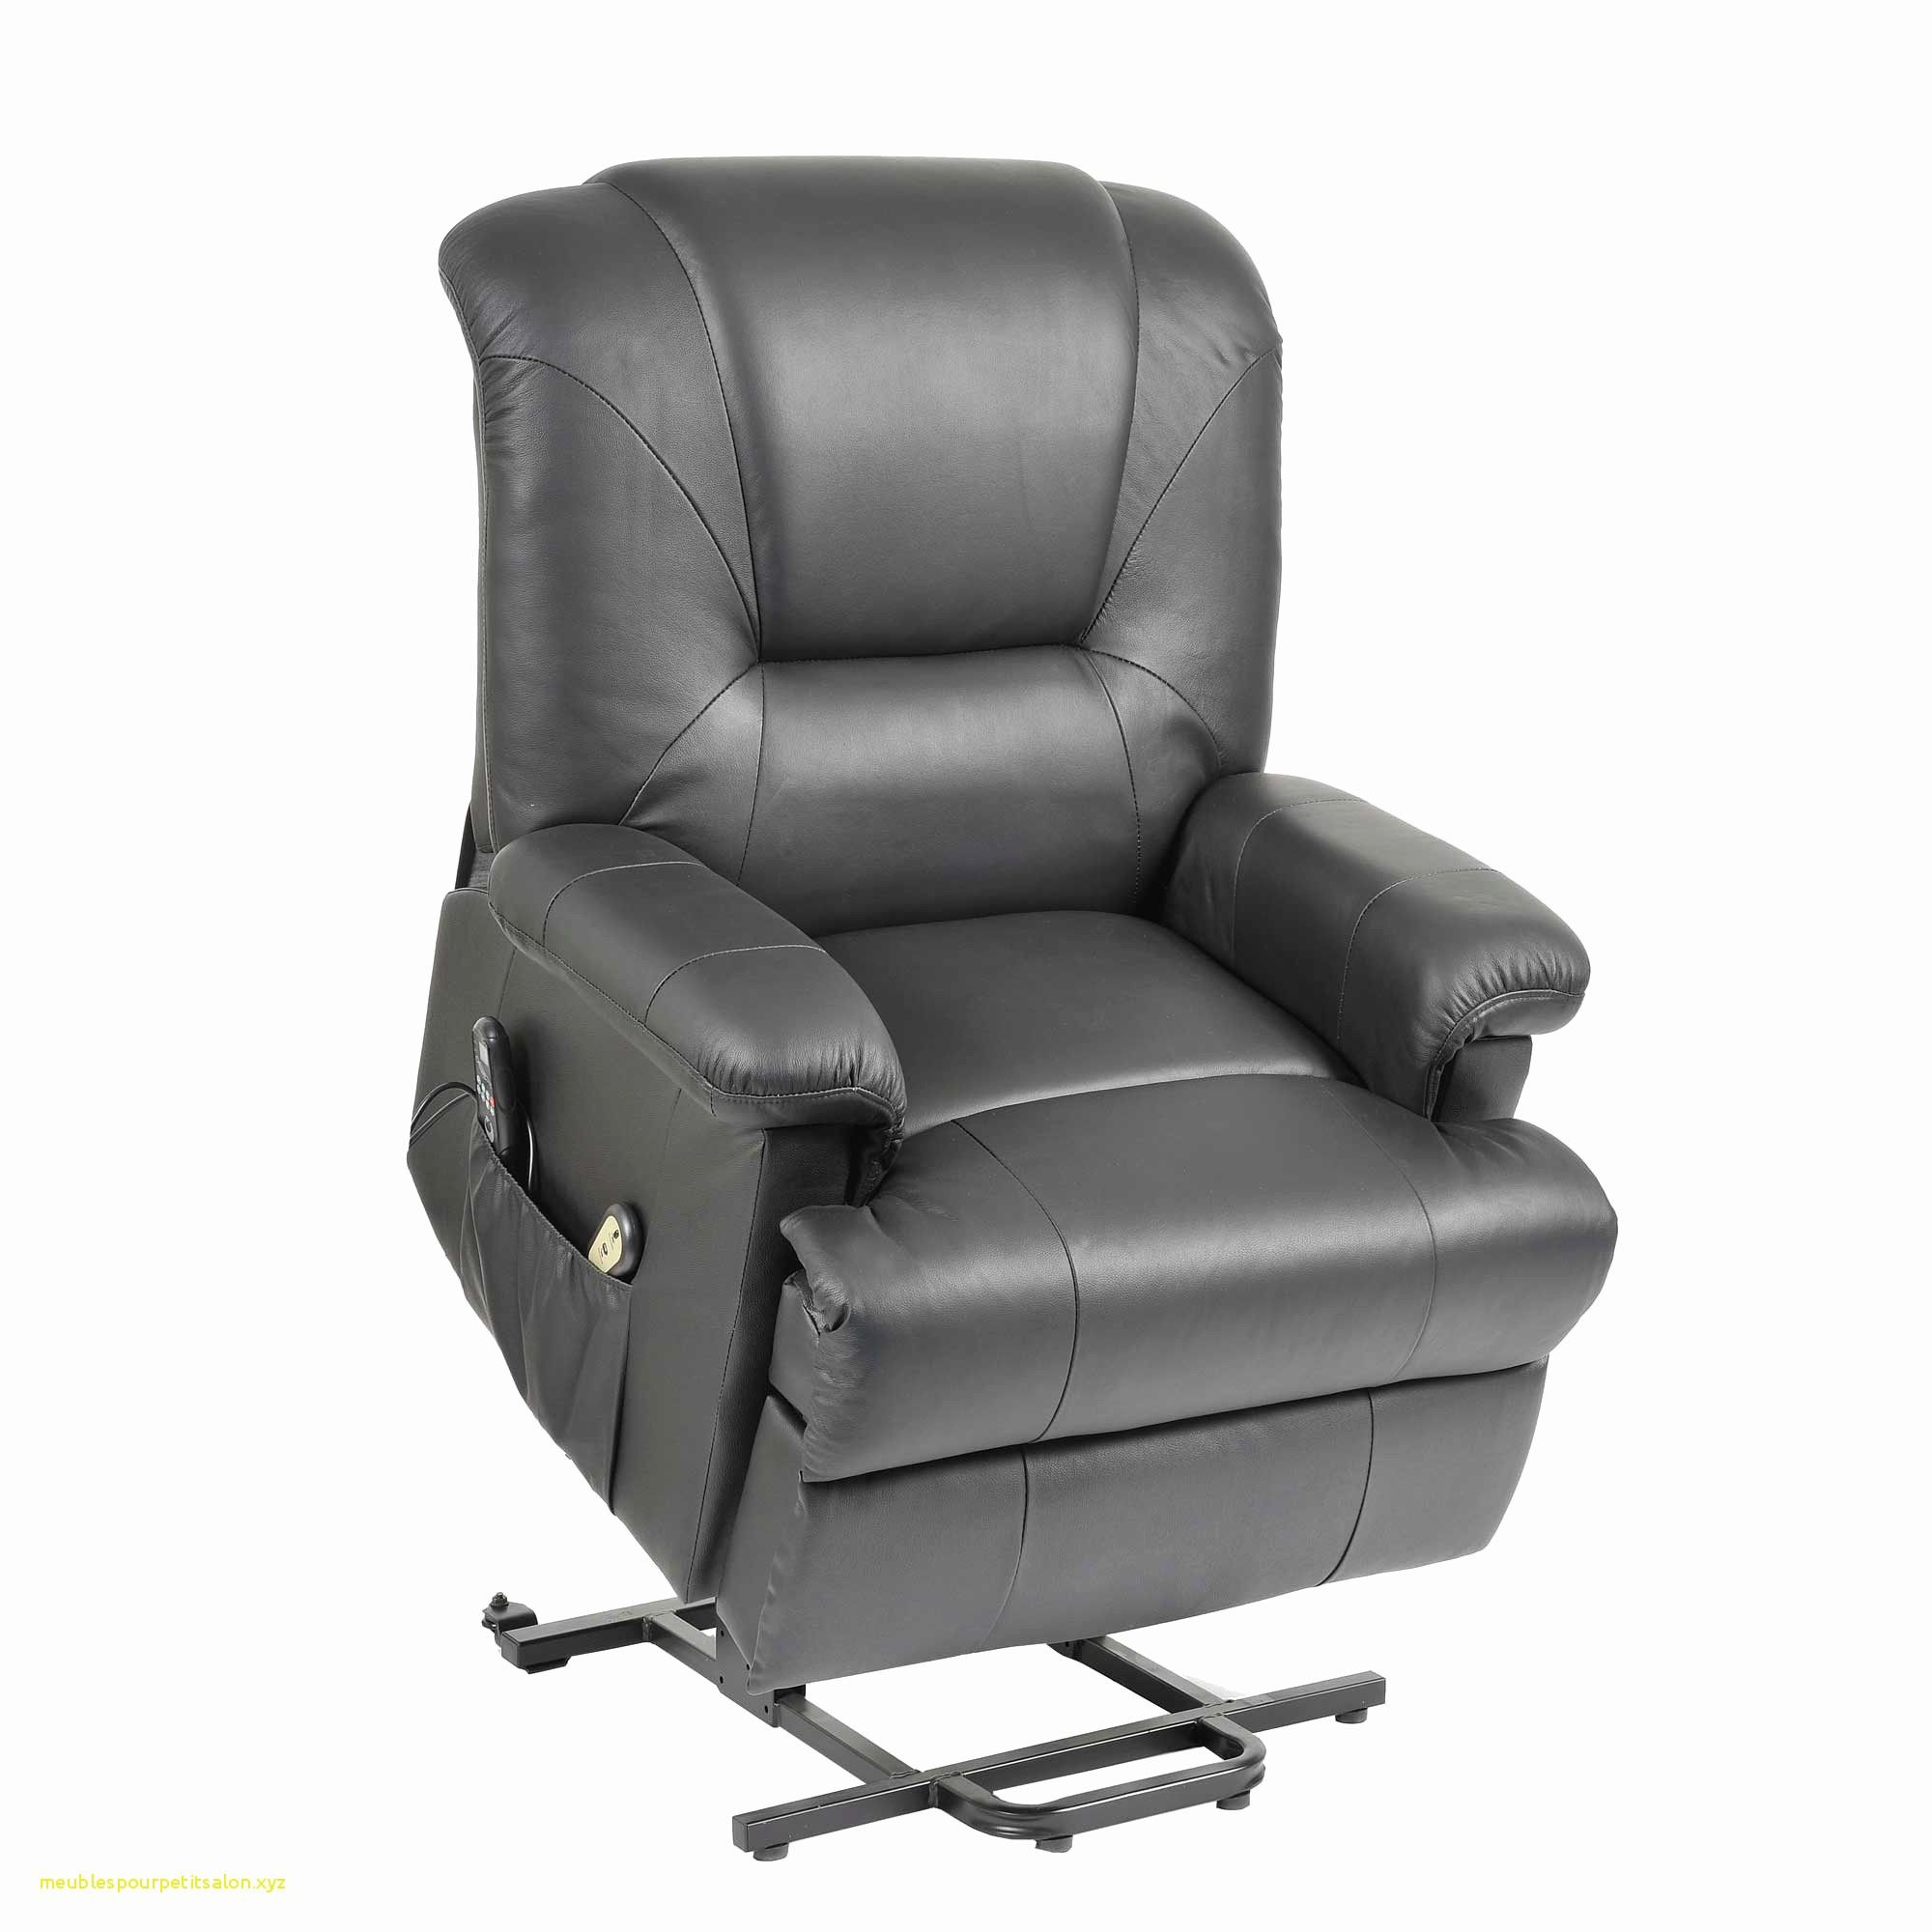 16 Attrayant Conforama Fauteuil Electrique A Besoin De Savoir Conforamabrestfauteuilrelaxelectrique Conforamafauteuilelectrique Designer Fauteuil In 2019 Chair Recliner Furniture